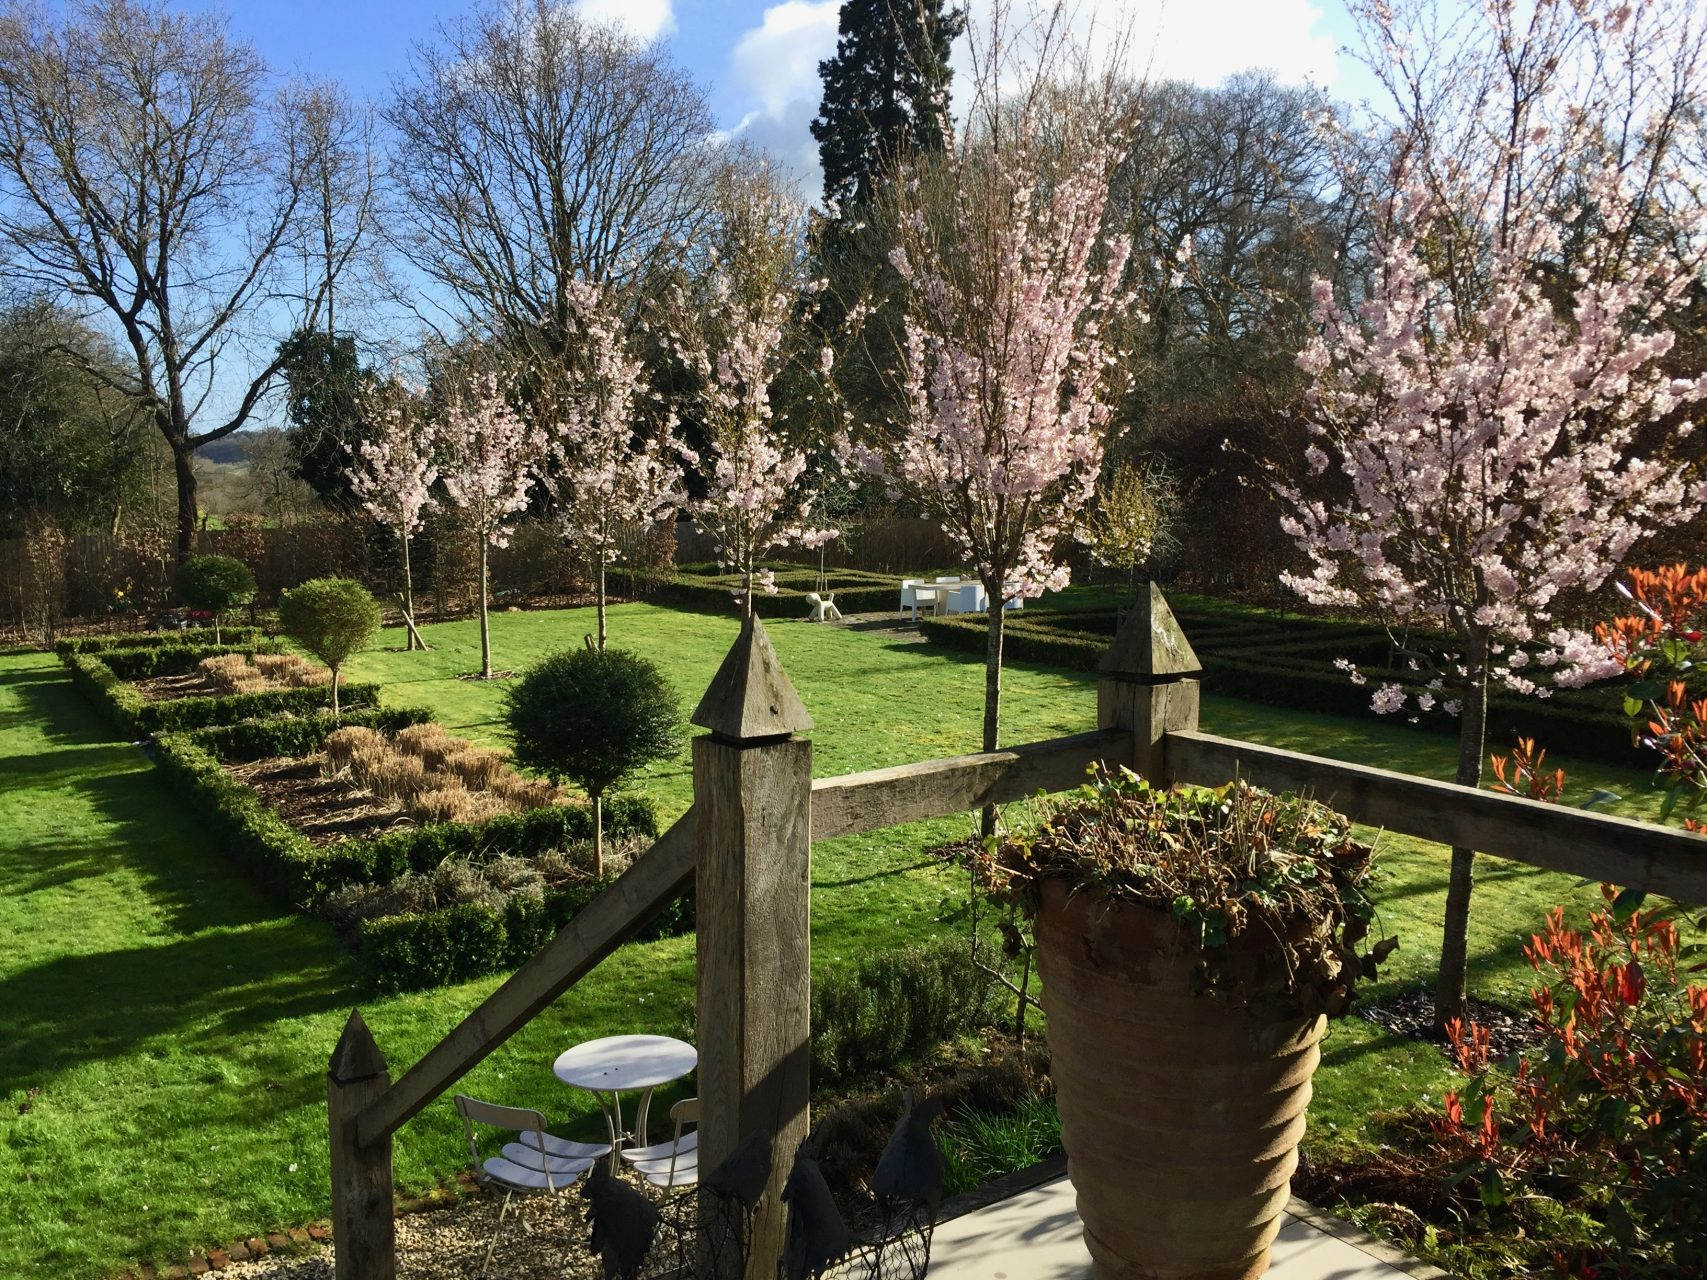 This is our own garden coming back to life after a really dreary winter. The cherry trees are in blossom & the amelanchier trees beyond have huge buds so should look lovely soon too